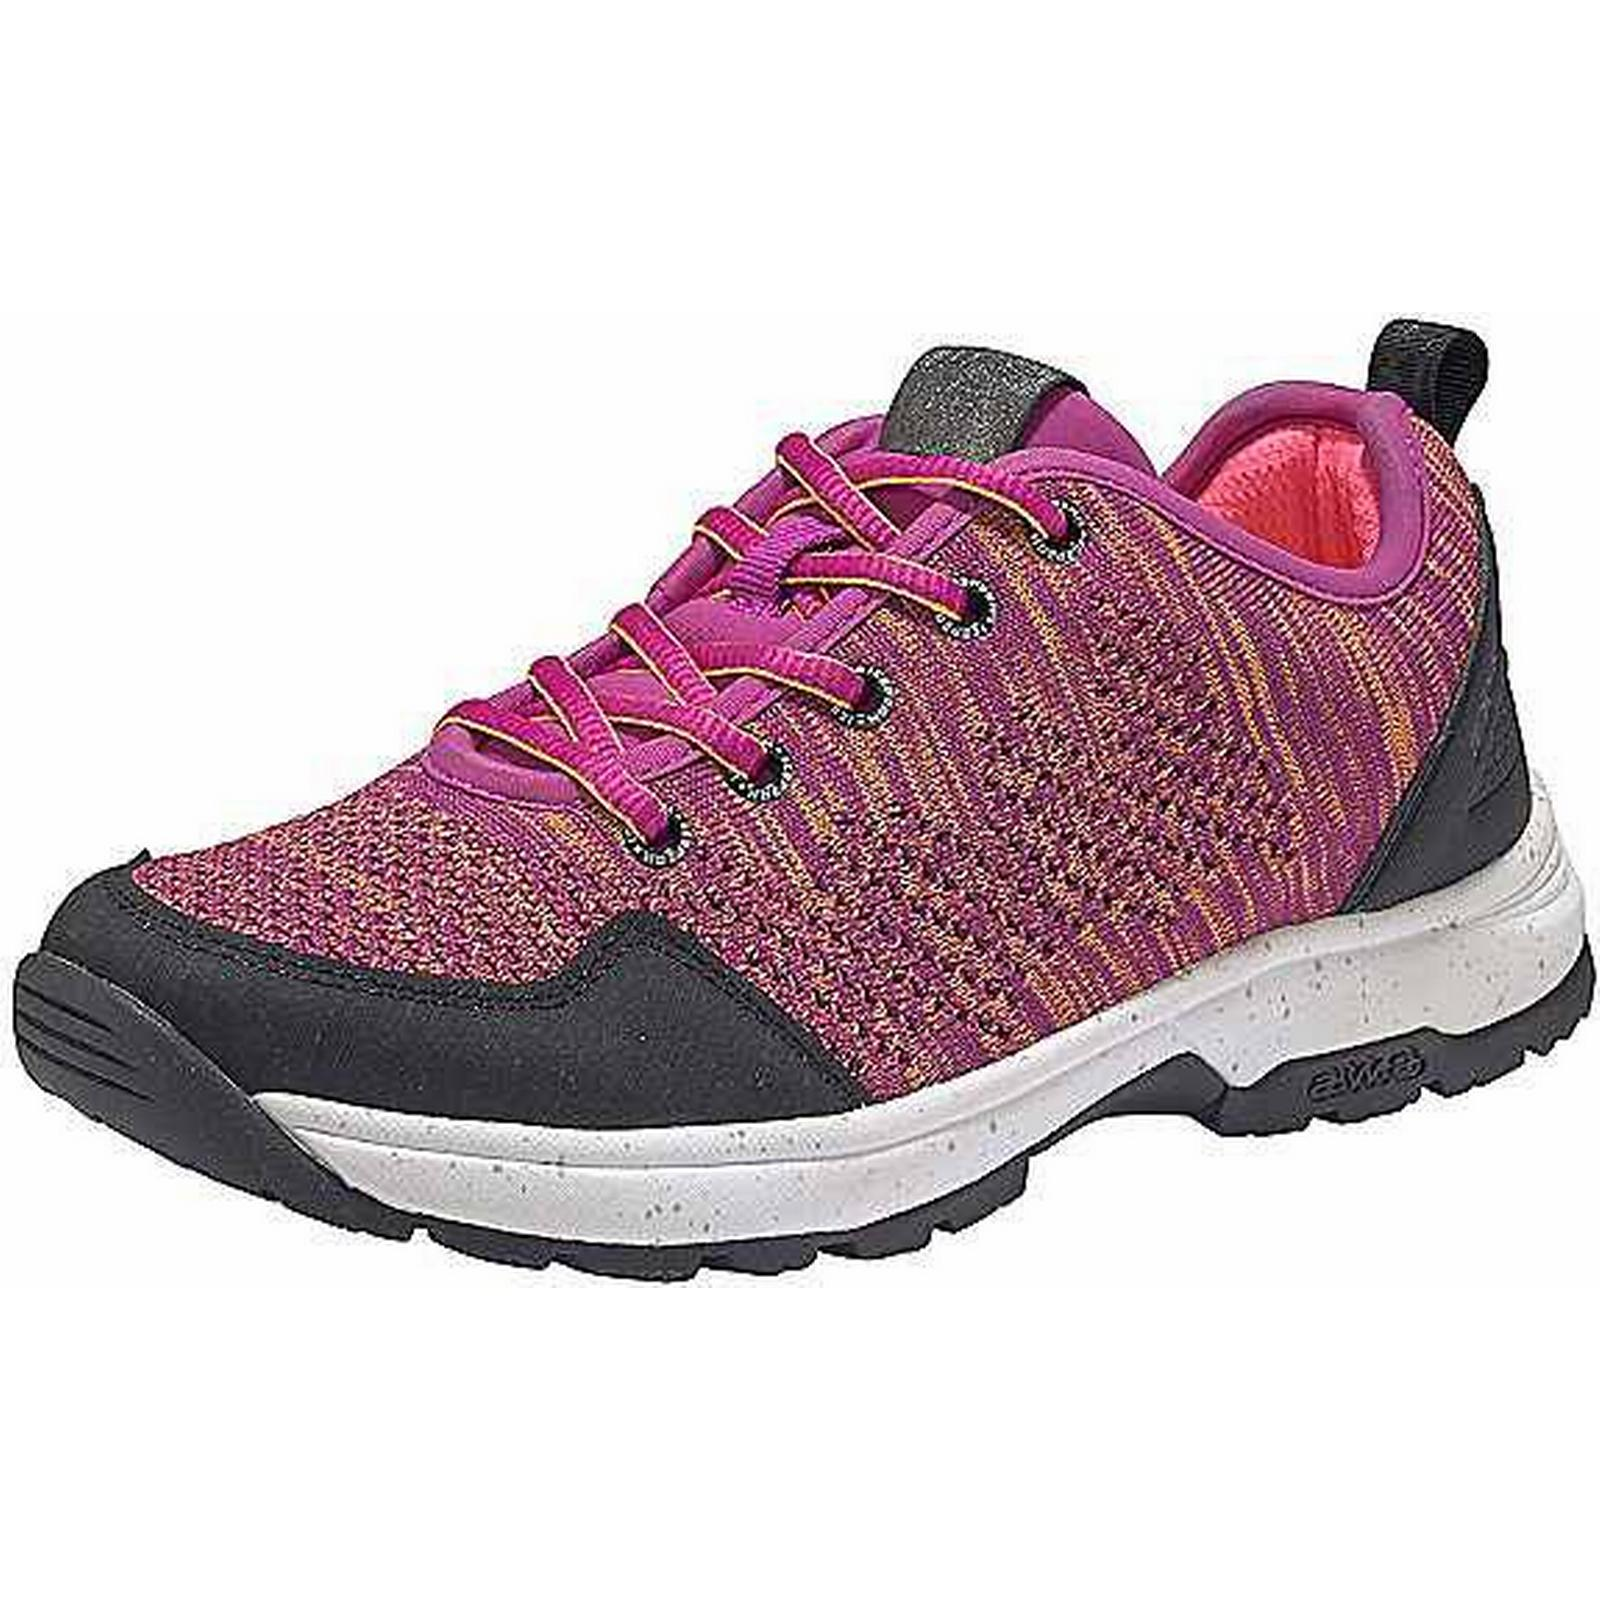 Icepeak 'Doles' ED Outdoor Shoes by Icepeak/Man's/Woman's/Diversified ED 'Doles' Pack 67cb13